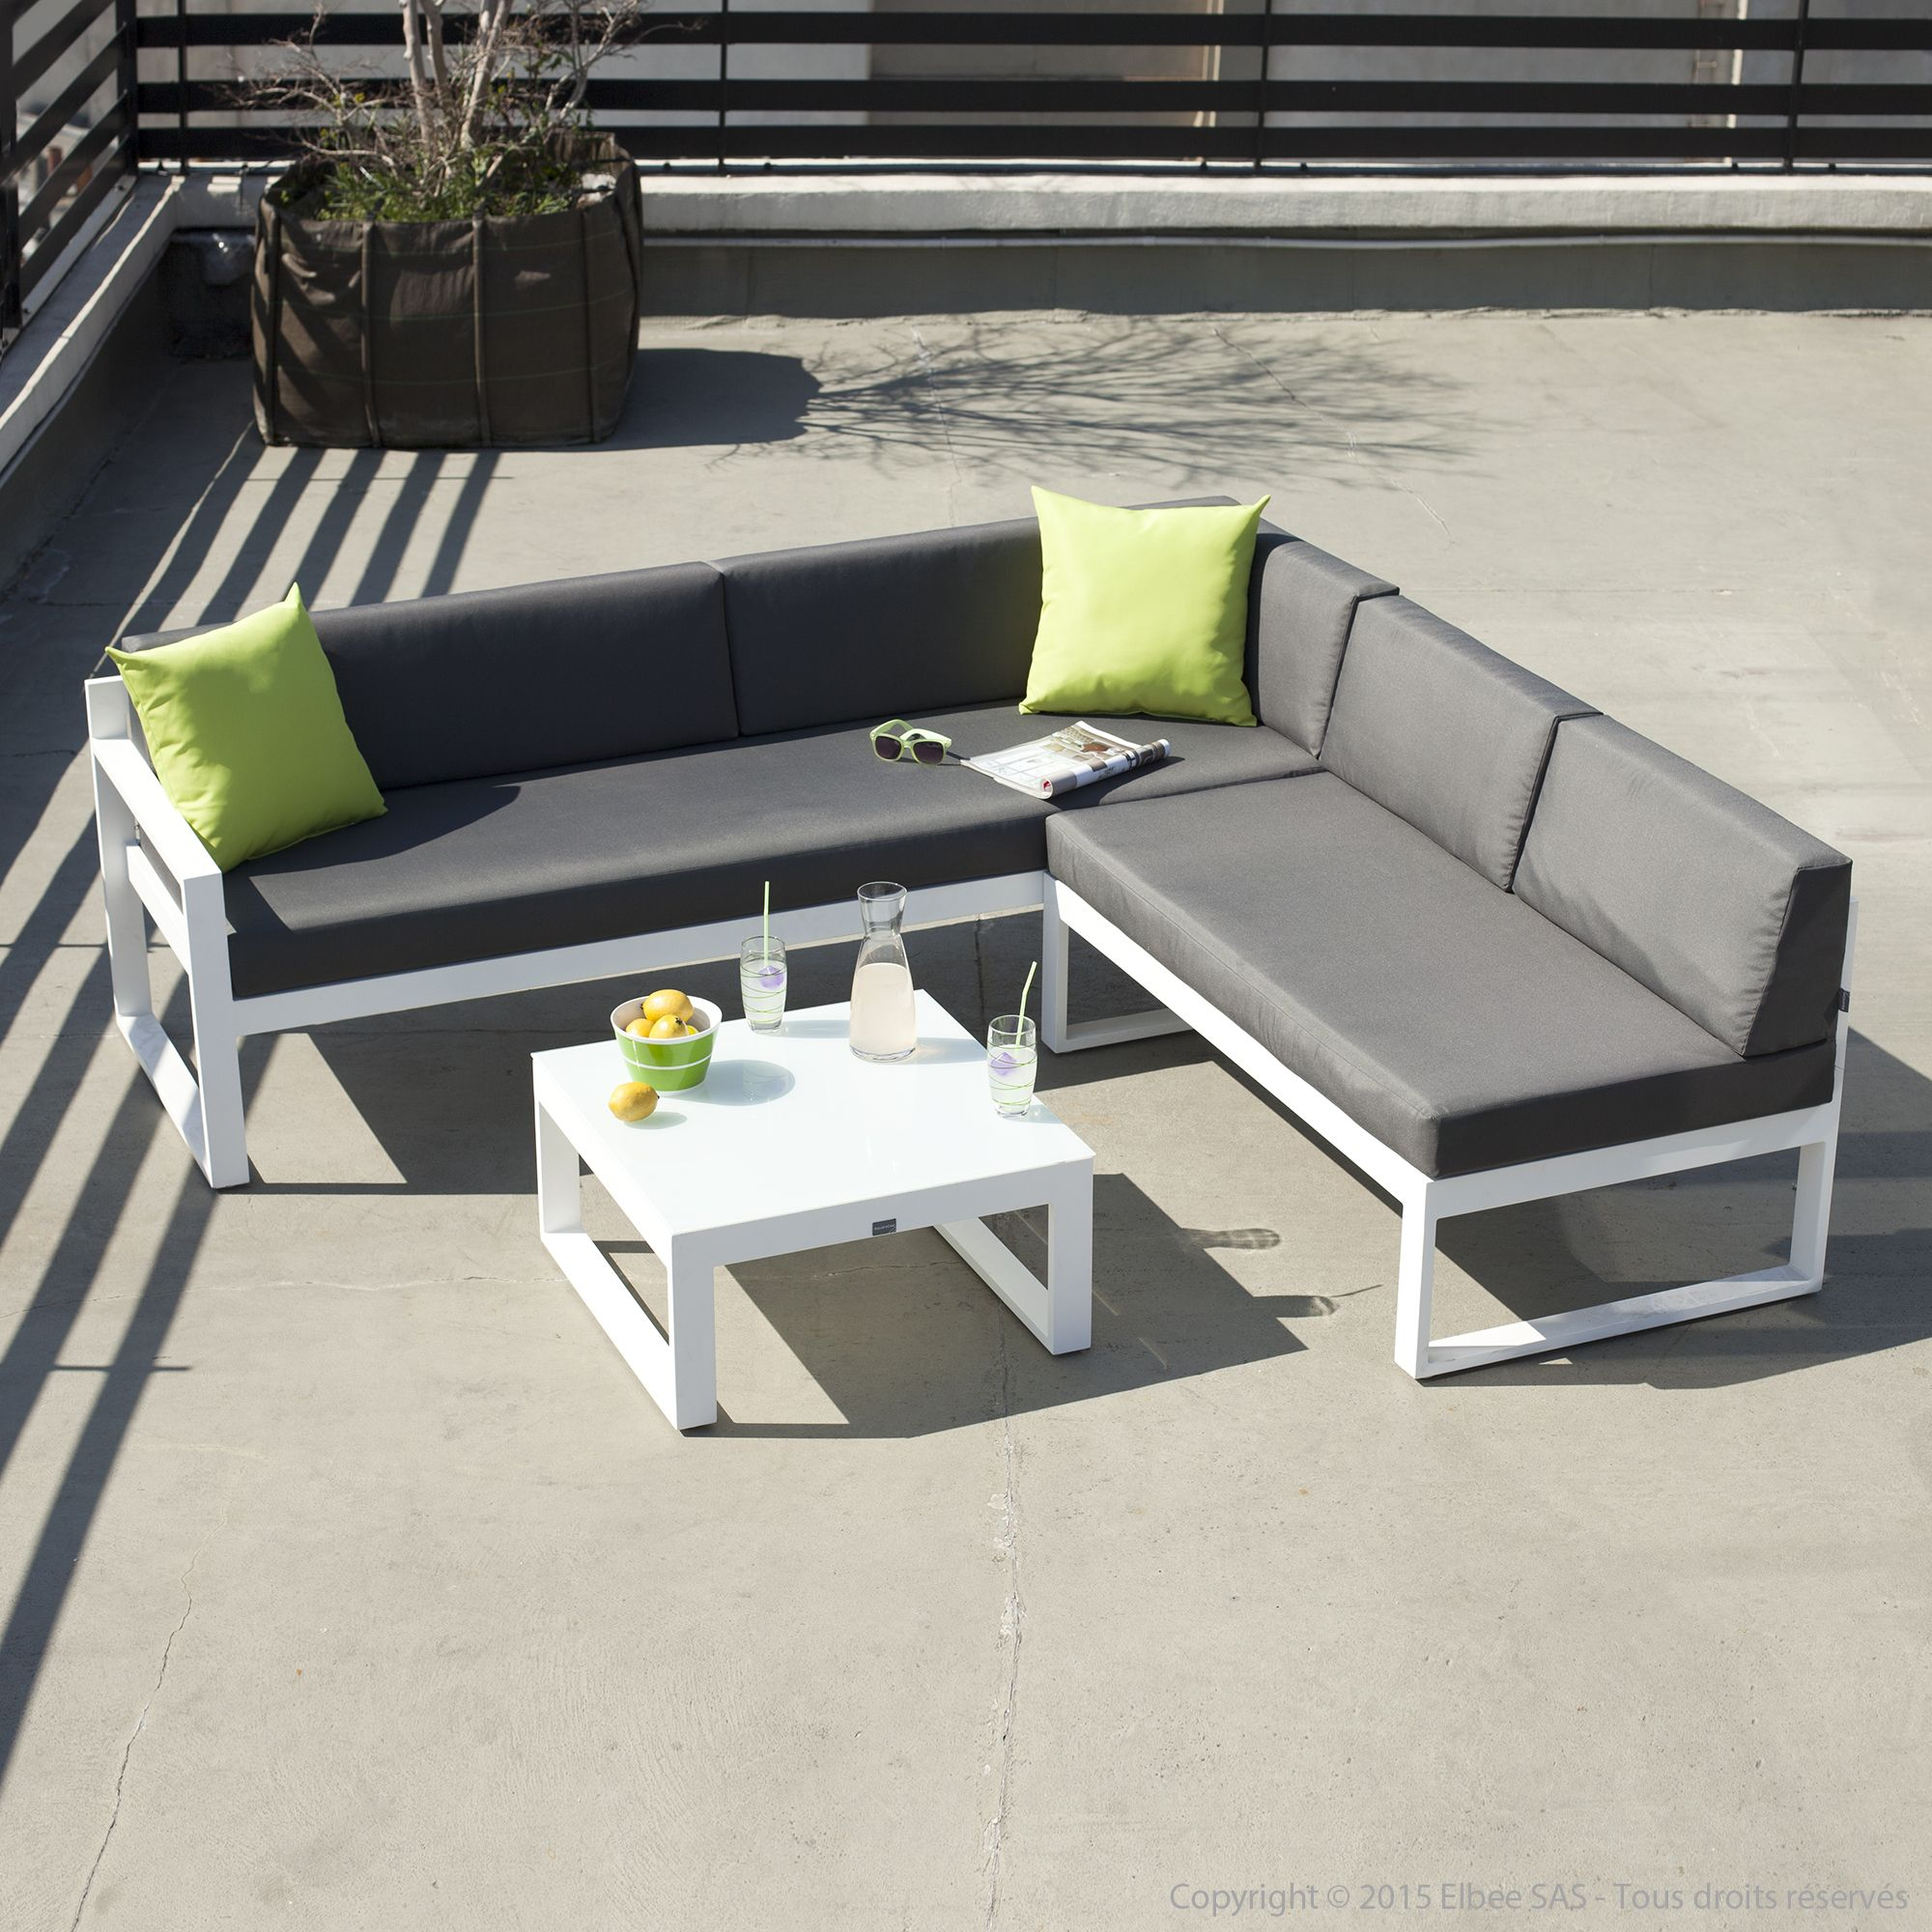 salon de jardin bas 5 places canap d 39 angle table basse en aluminium moderne salons and canapes. Black Bedroom Furniture Sets. Home Design Ideas